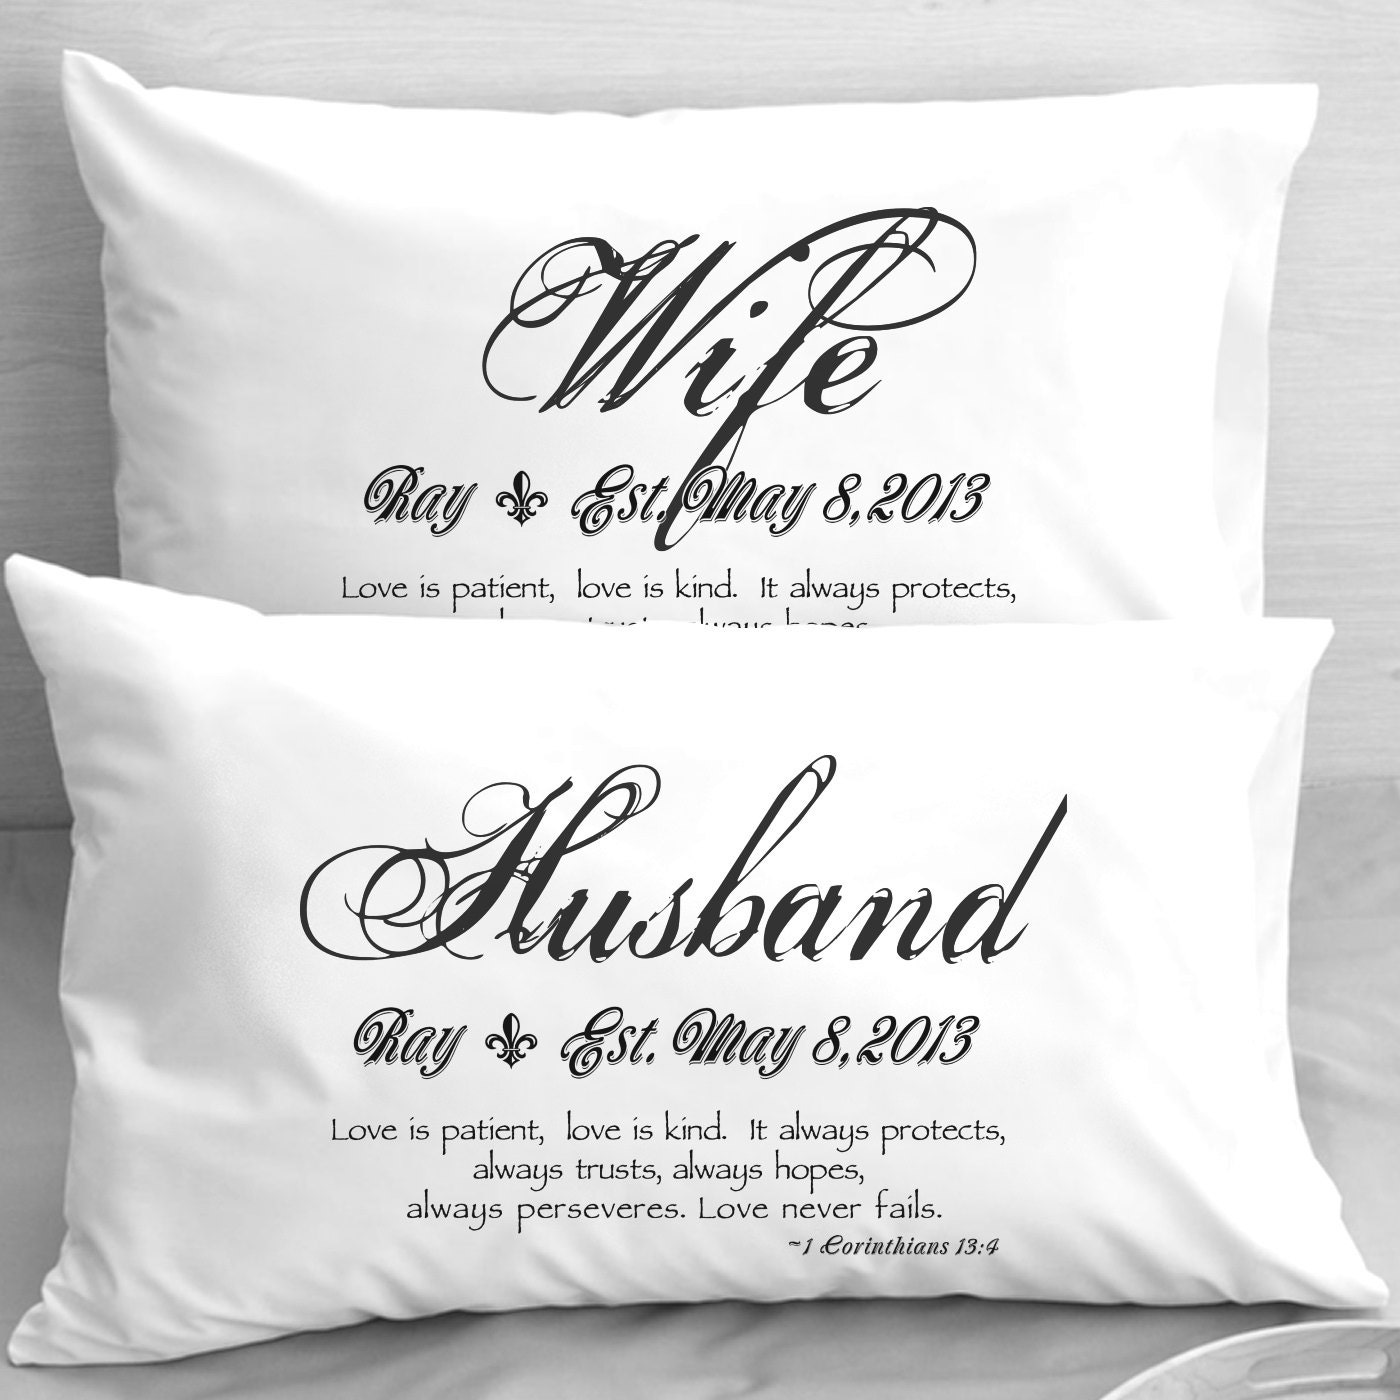 1st Wedding Anniversary Gifts Husband : Wedding Anniversary Gifts: Wedding Anniversary Gifts For Husband ...